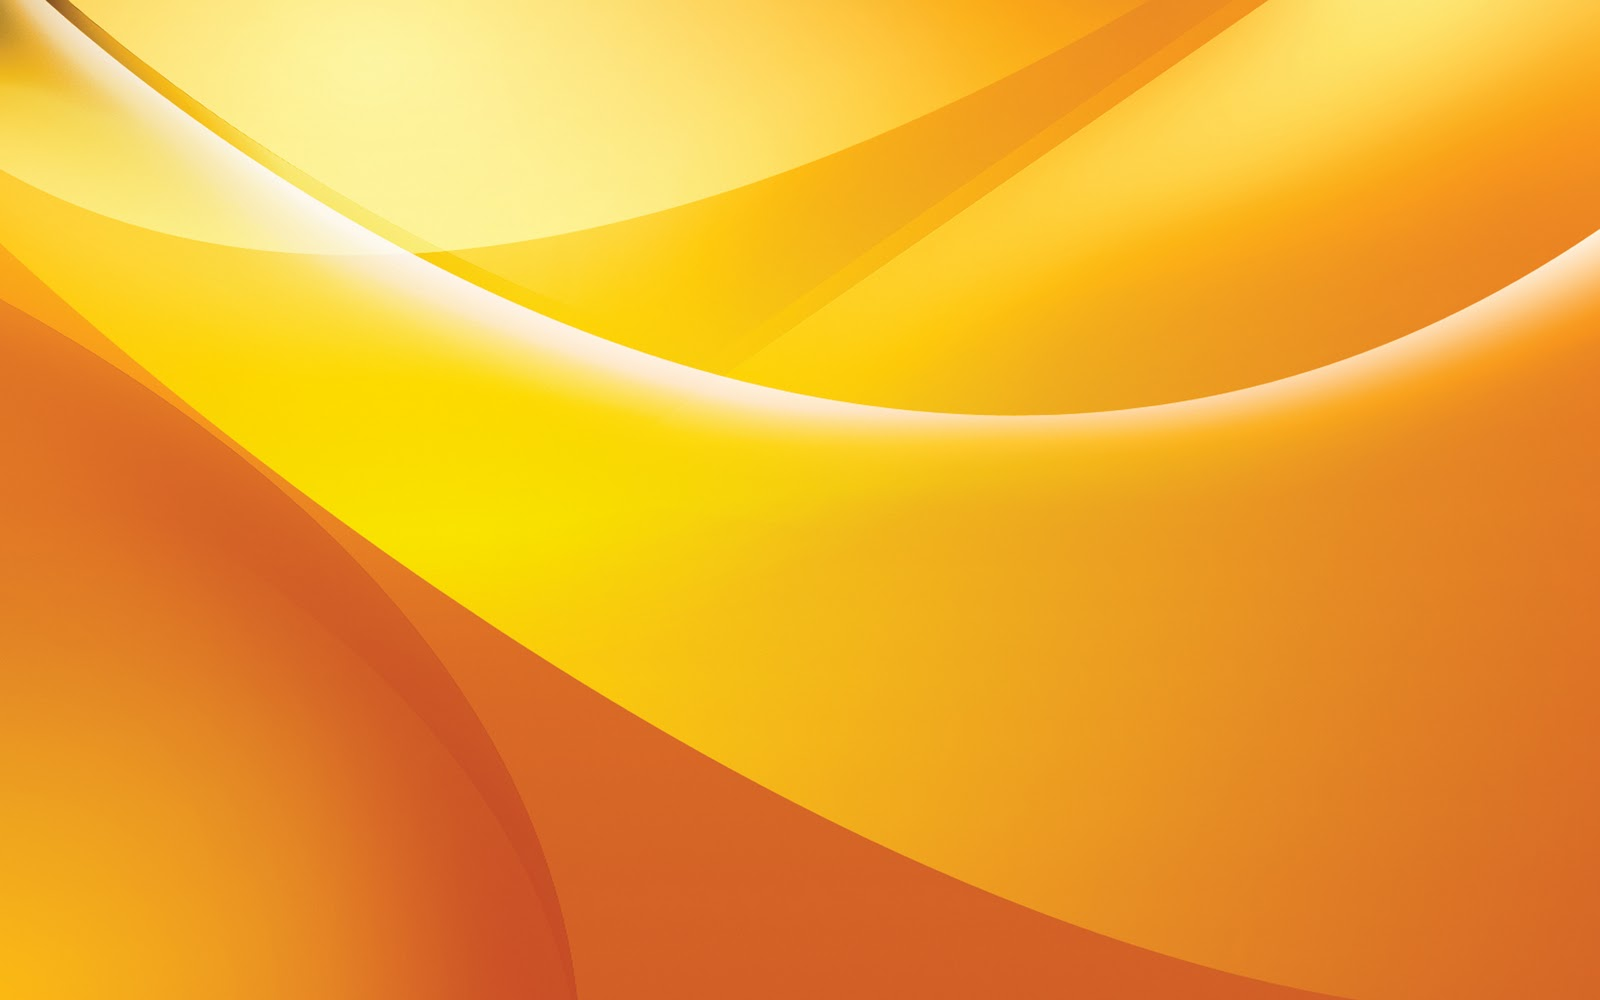 http://3.bp.blogspot.com/_Iq1fkO6qus0/TUvZ1Rqs7pI/AAAAAAAAAxI/zr4wAbhhBhw/s1600/Orange_Abstract_Wallpapers_3220114.jpg